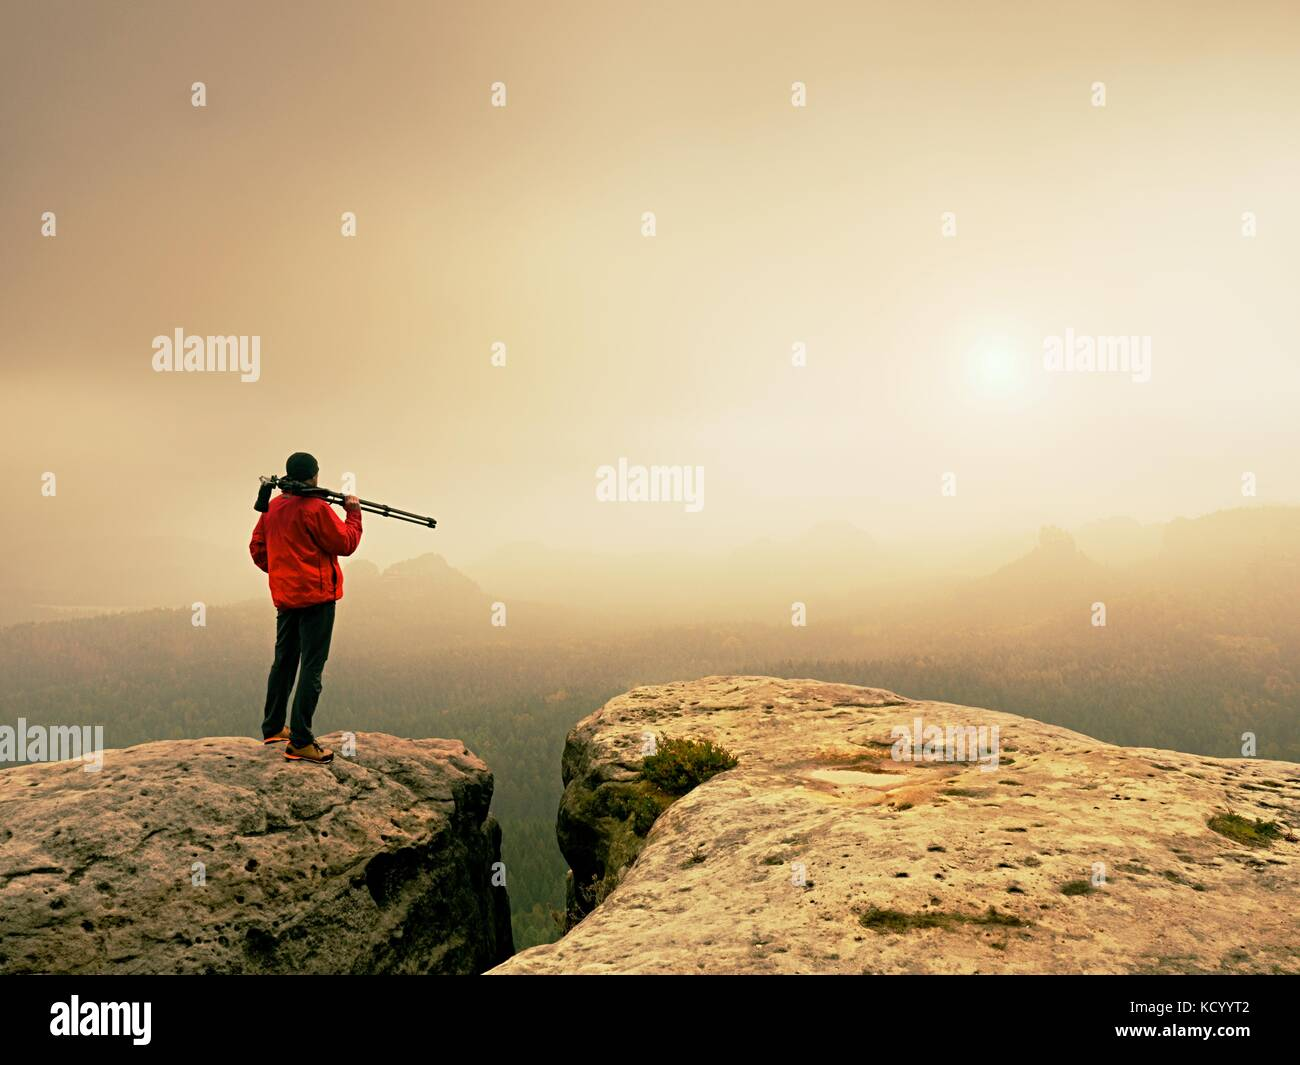 Professional photographer on location takes photos with mirror camera on peak of rock. Dreamy foggy landscape, spring - Stock Image